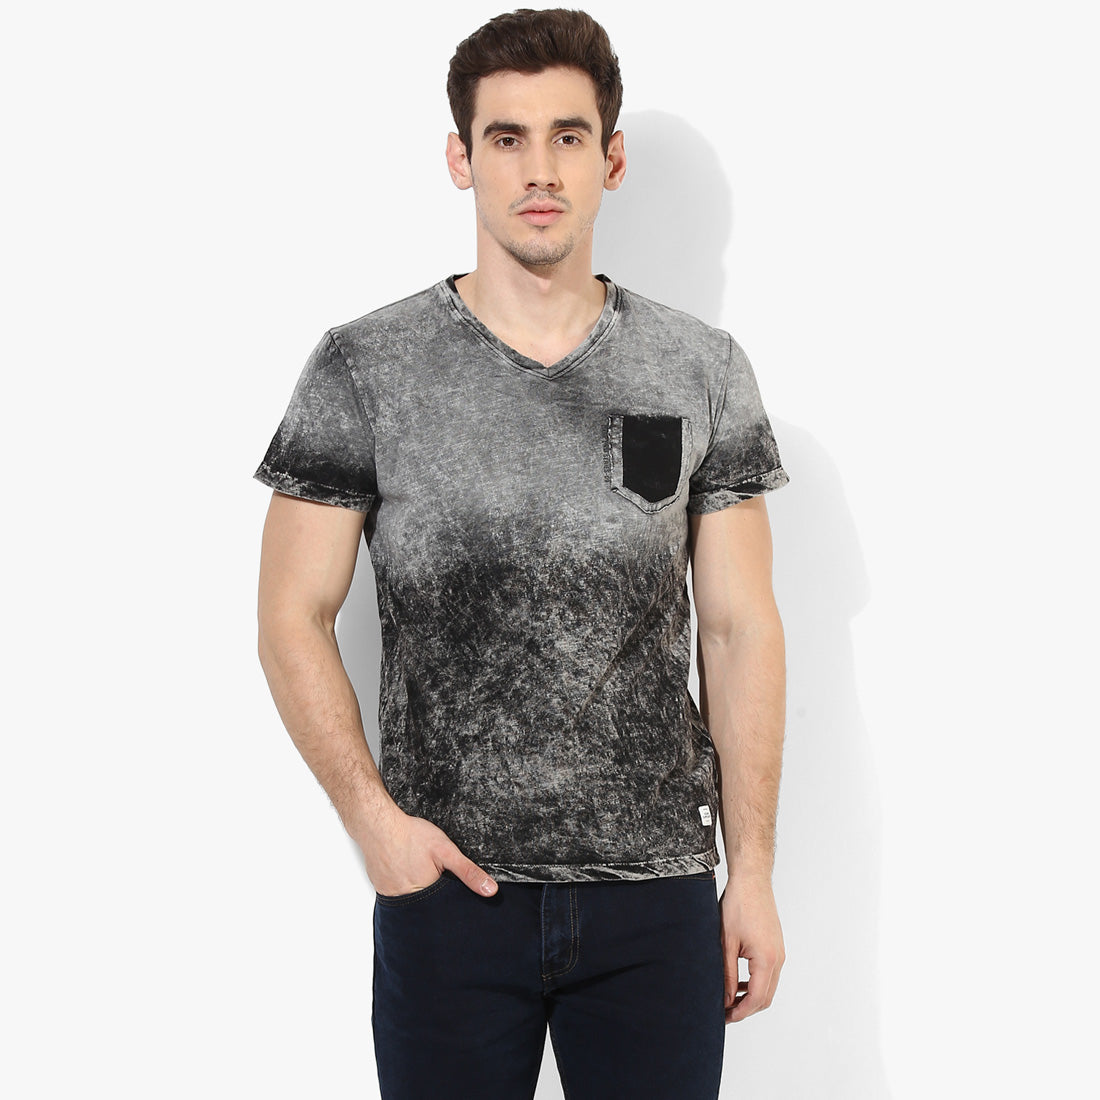 Black Ombre V-Neck Tee